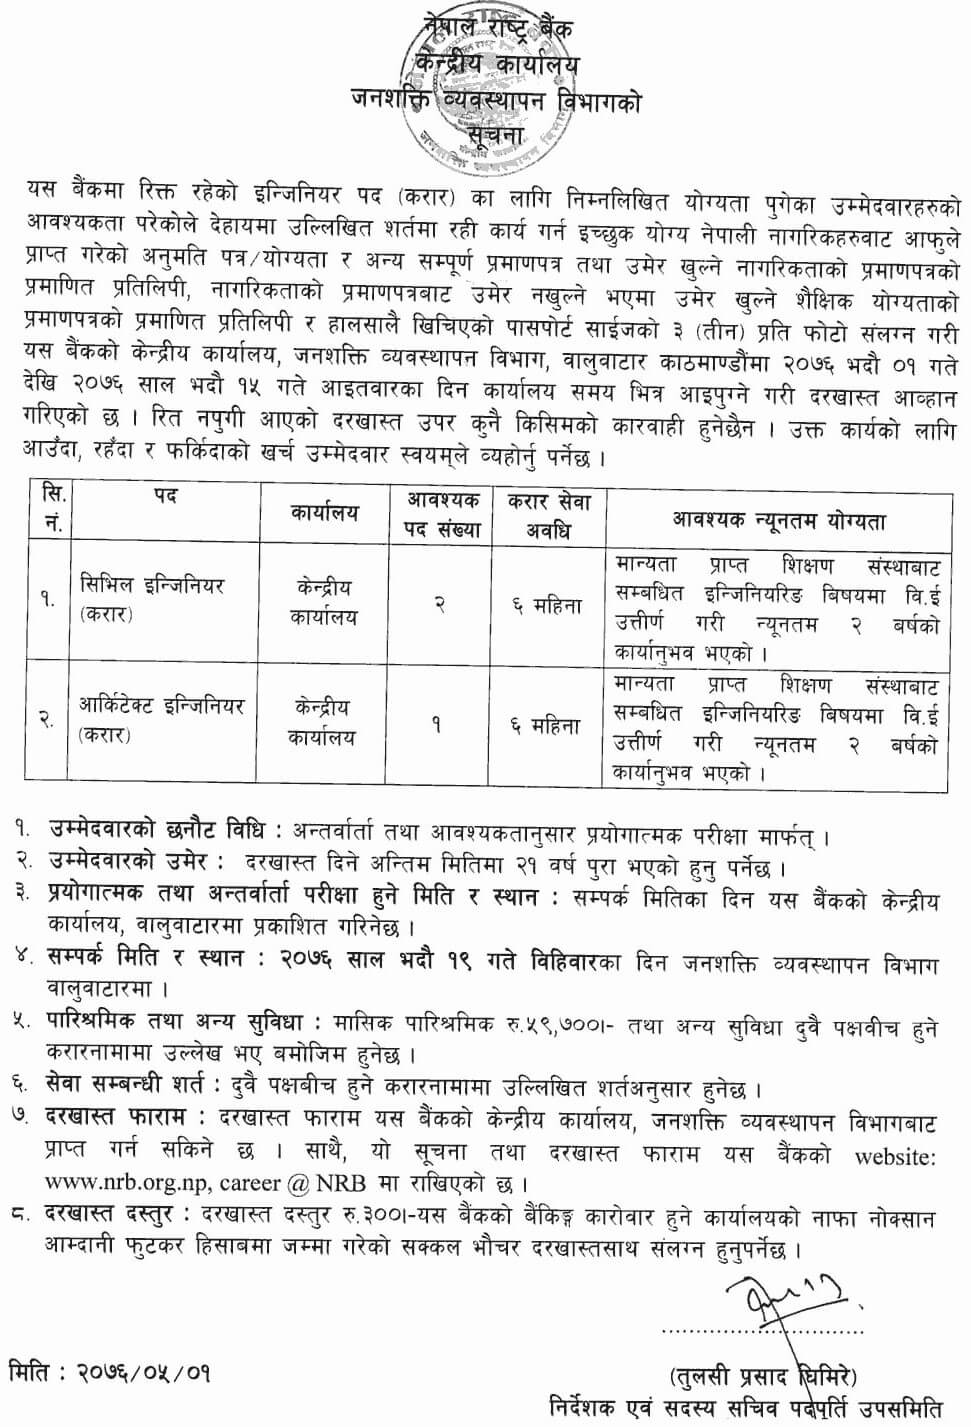 Nepal Rastra Bank Jobs for Engineers- Civil Engineer & Architect Engineer